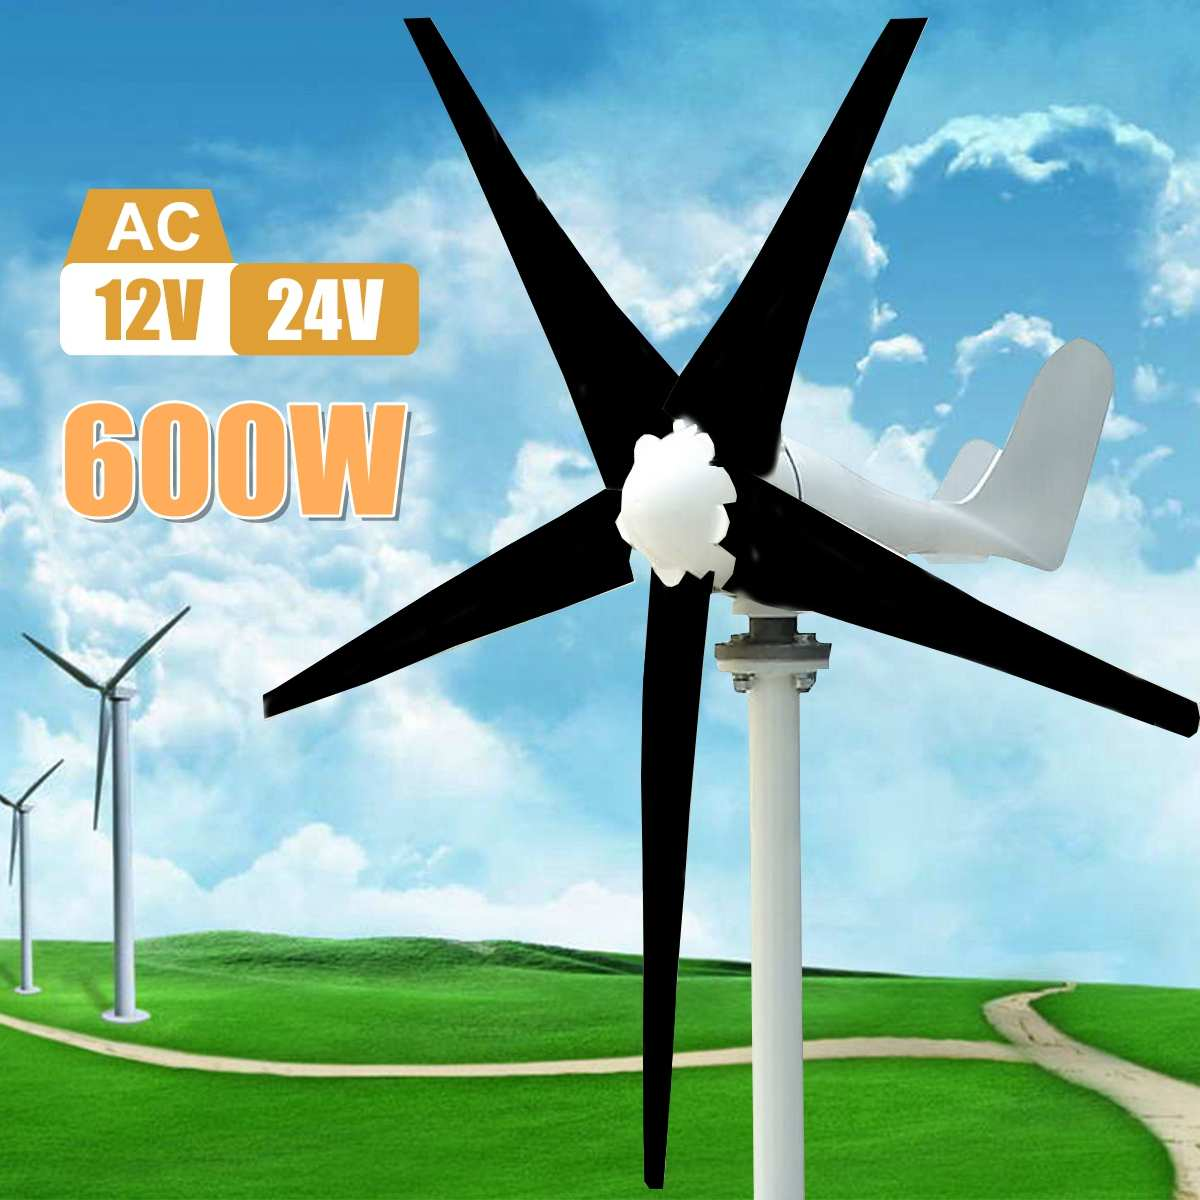 Max 600W Wind Turbine Generator AC 12V/24V 5 Blade Power Supply Generator for Home Hybrid streetlight use Kits-in Alternative Energy Generators from Home Improvement